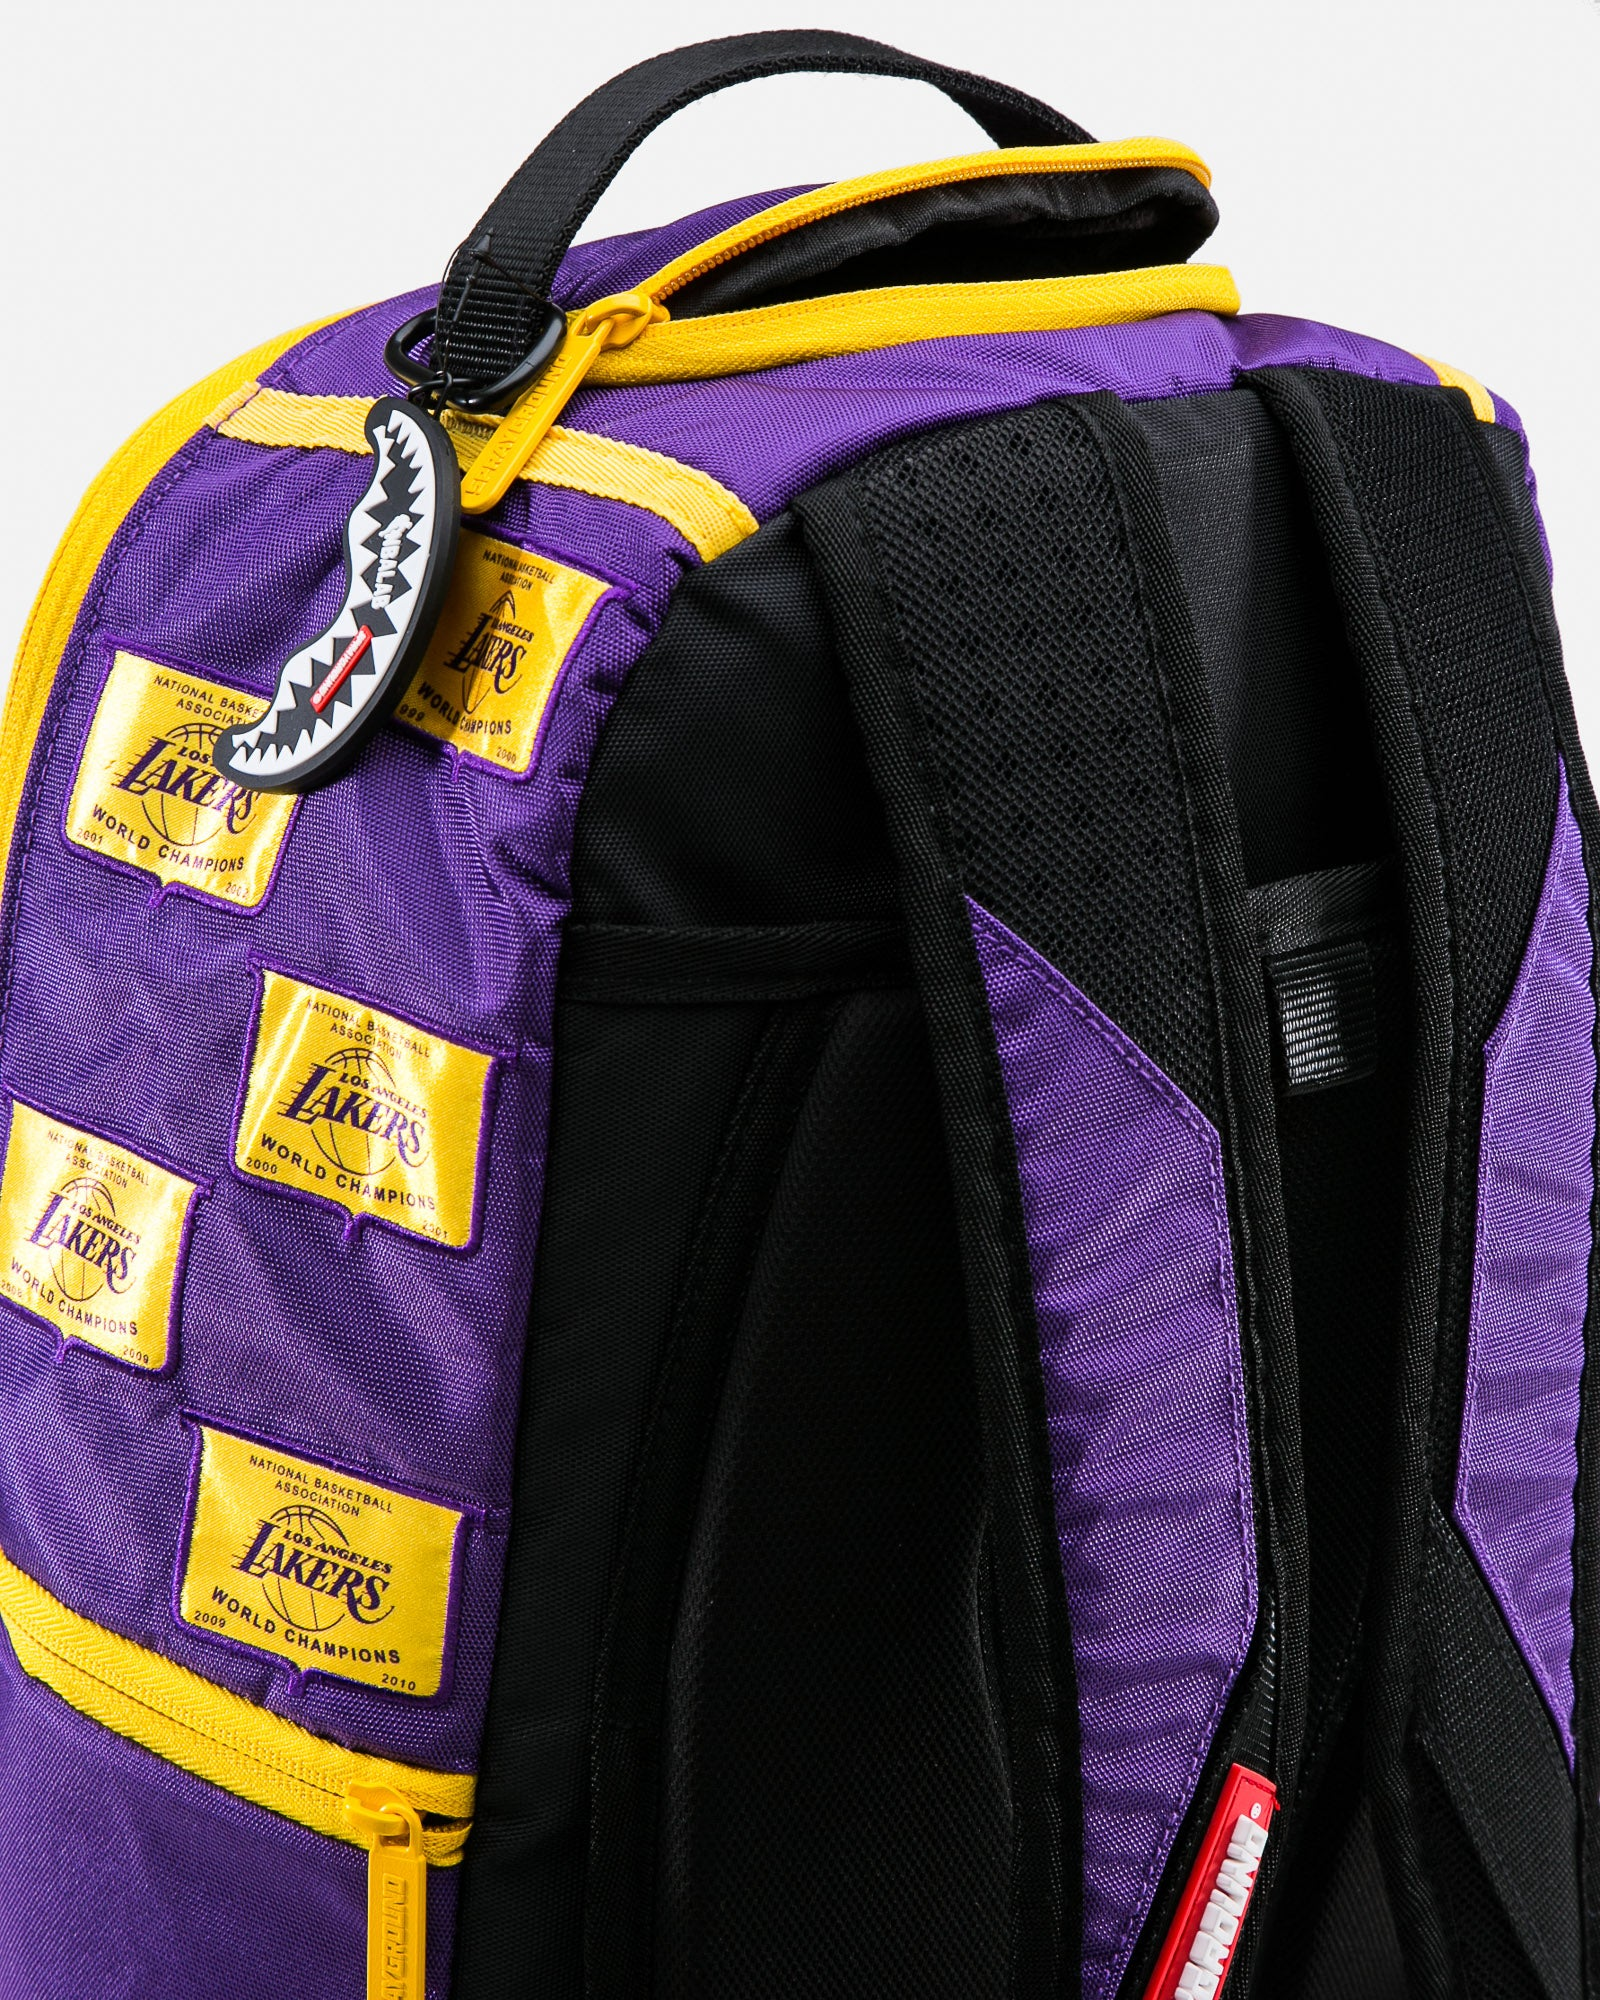 536ab1afb30efc la lakers backpack cheap   OFF72% The Largest Catalog Discounts